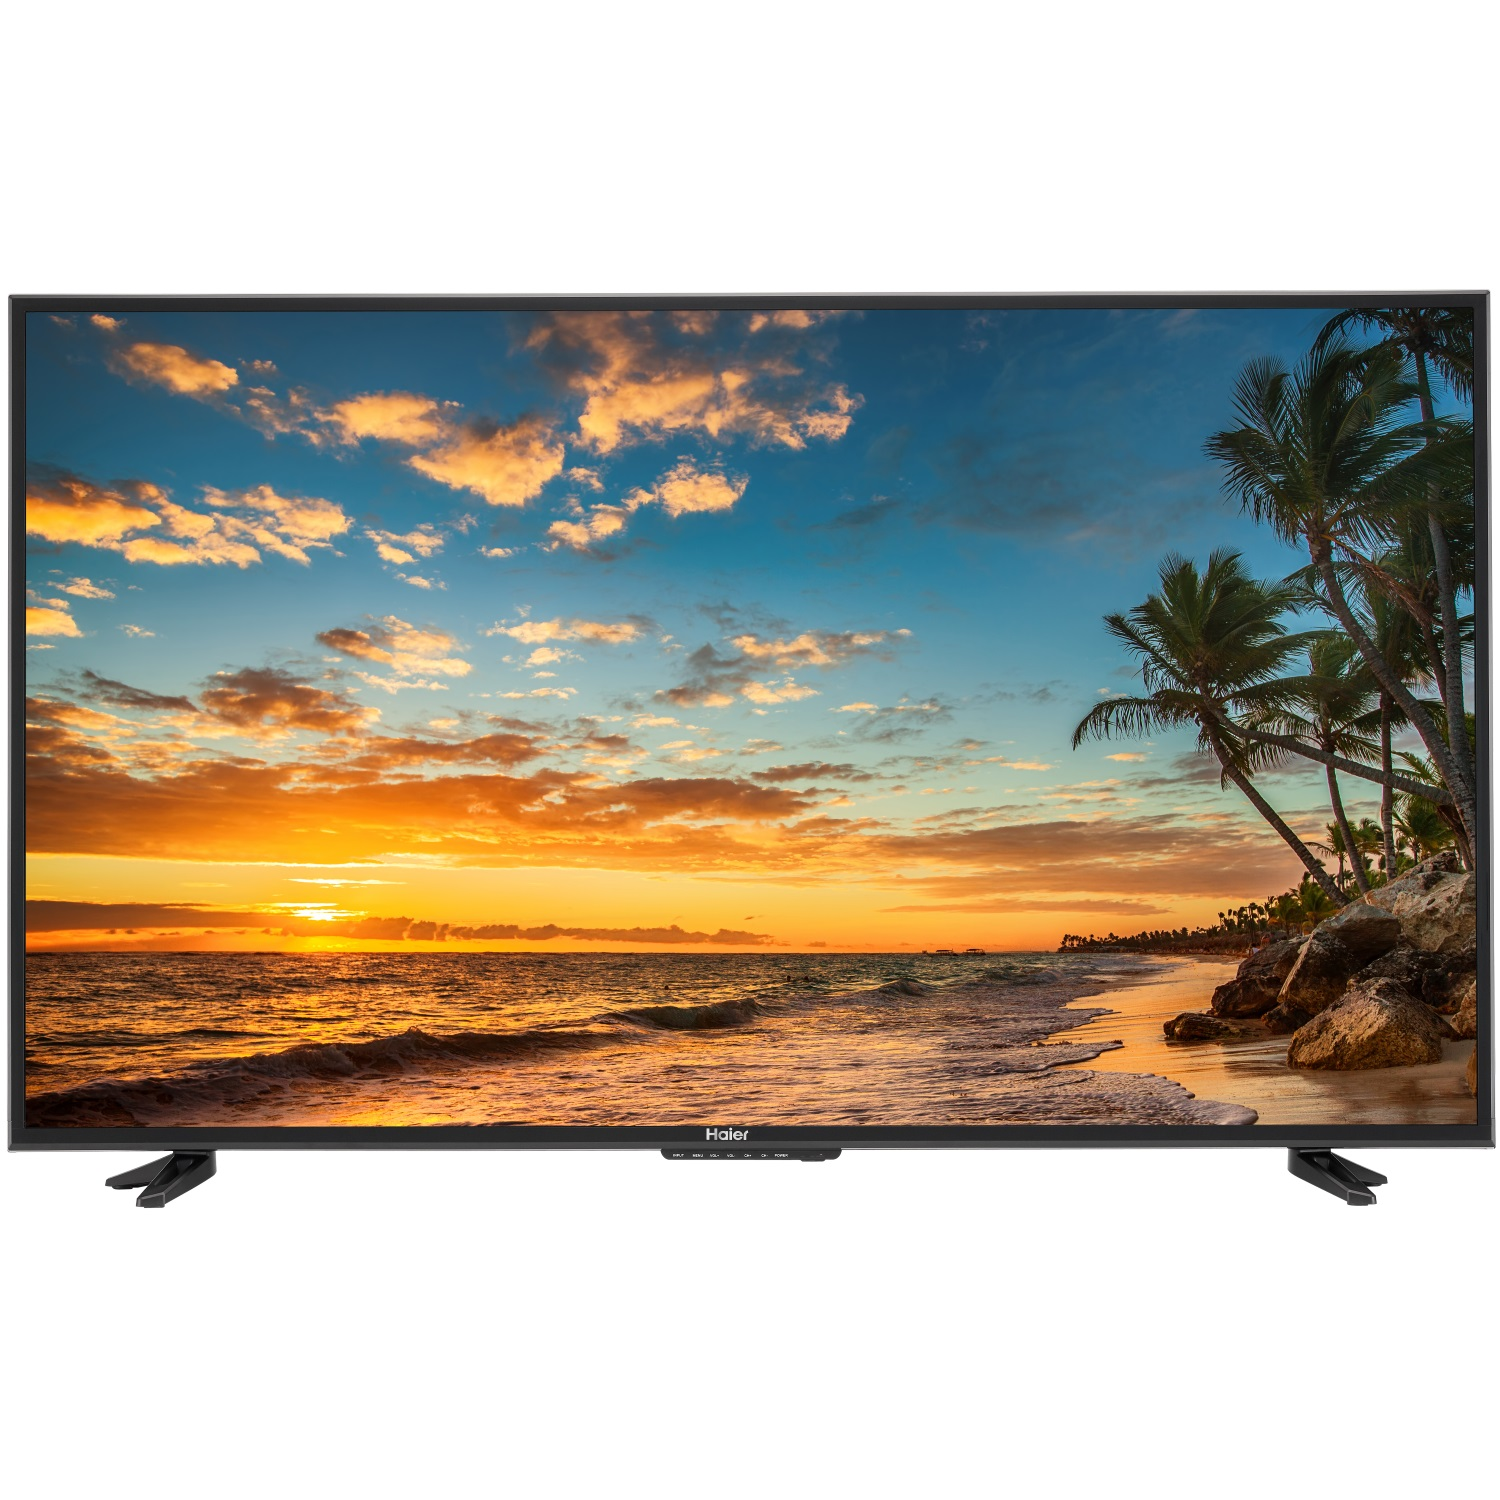 "Haier 65UG2500 65"" Class 4K Ultra HD TV (2017 Model)"